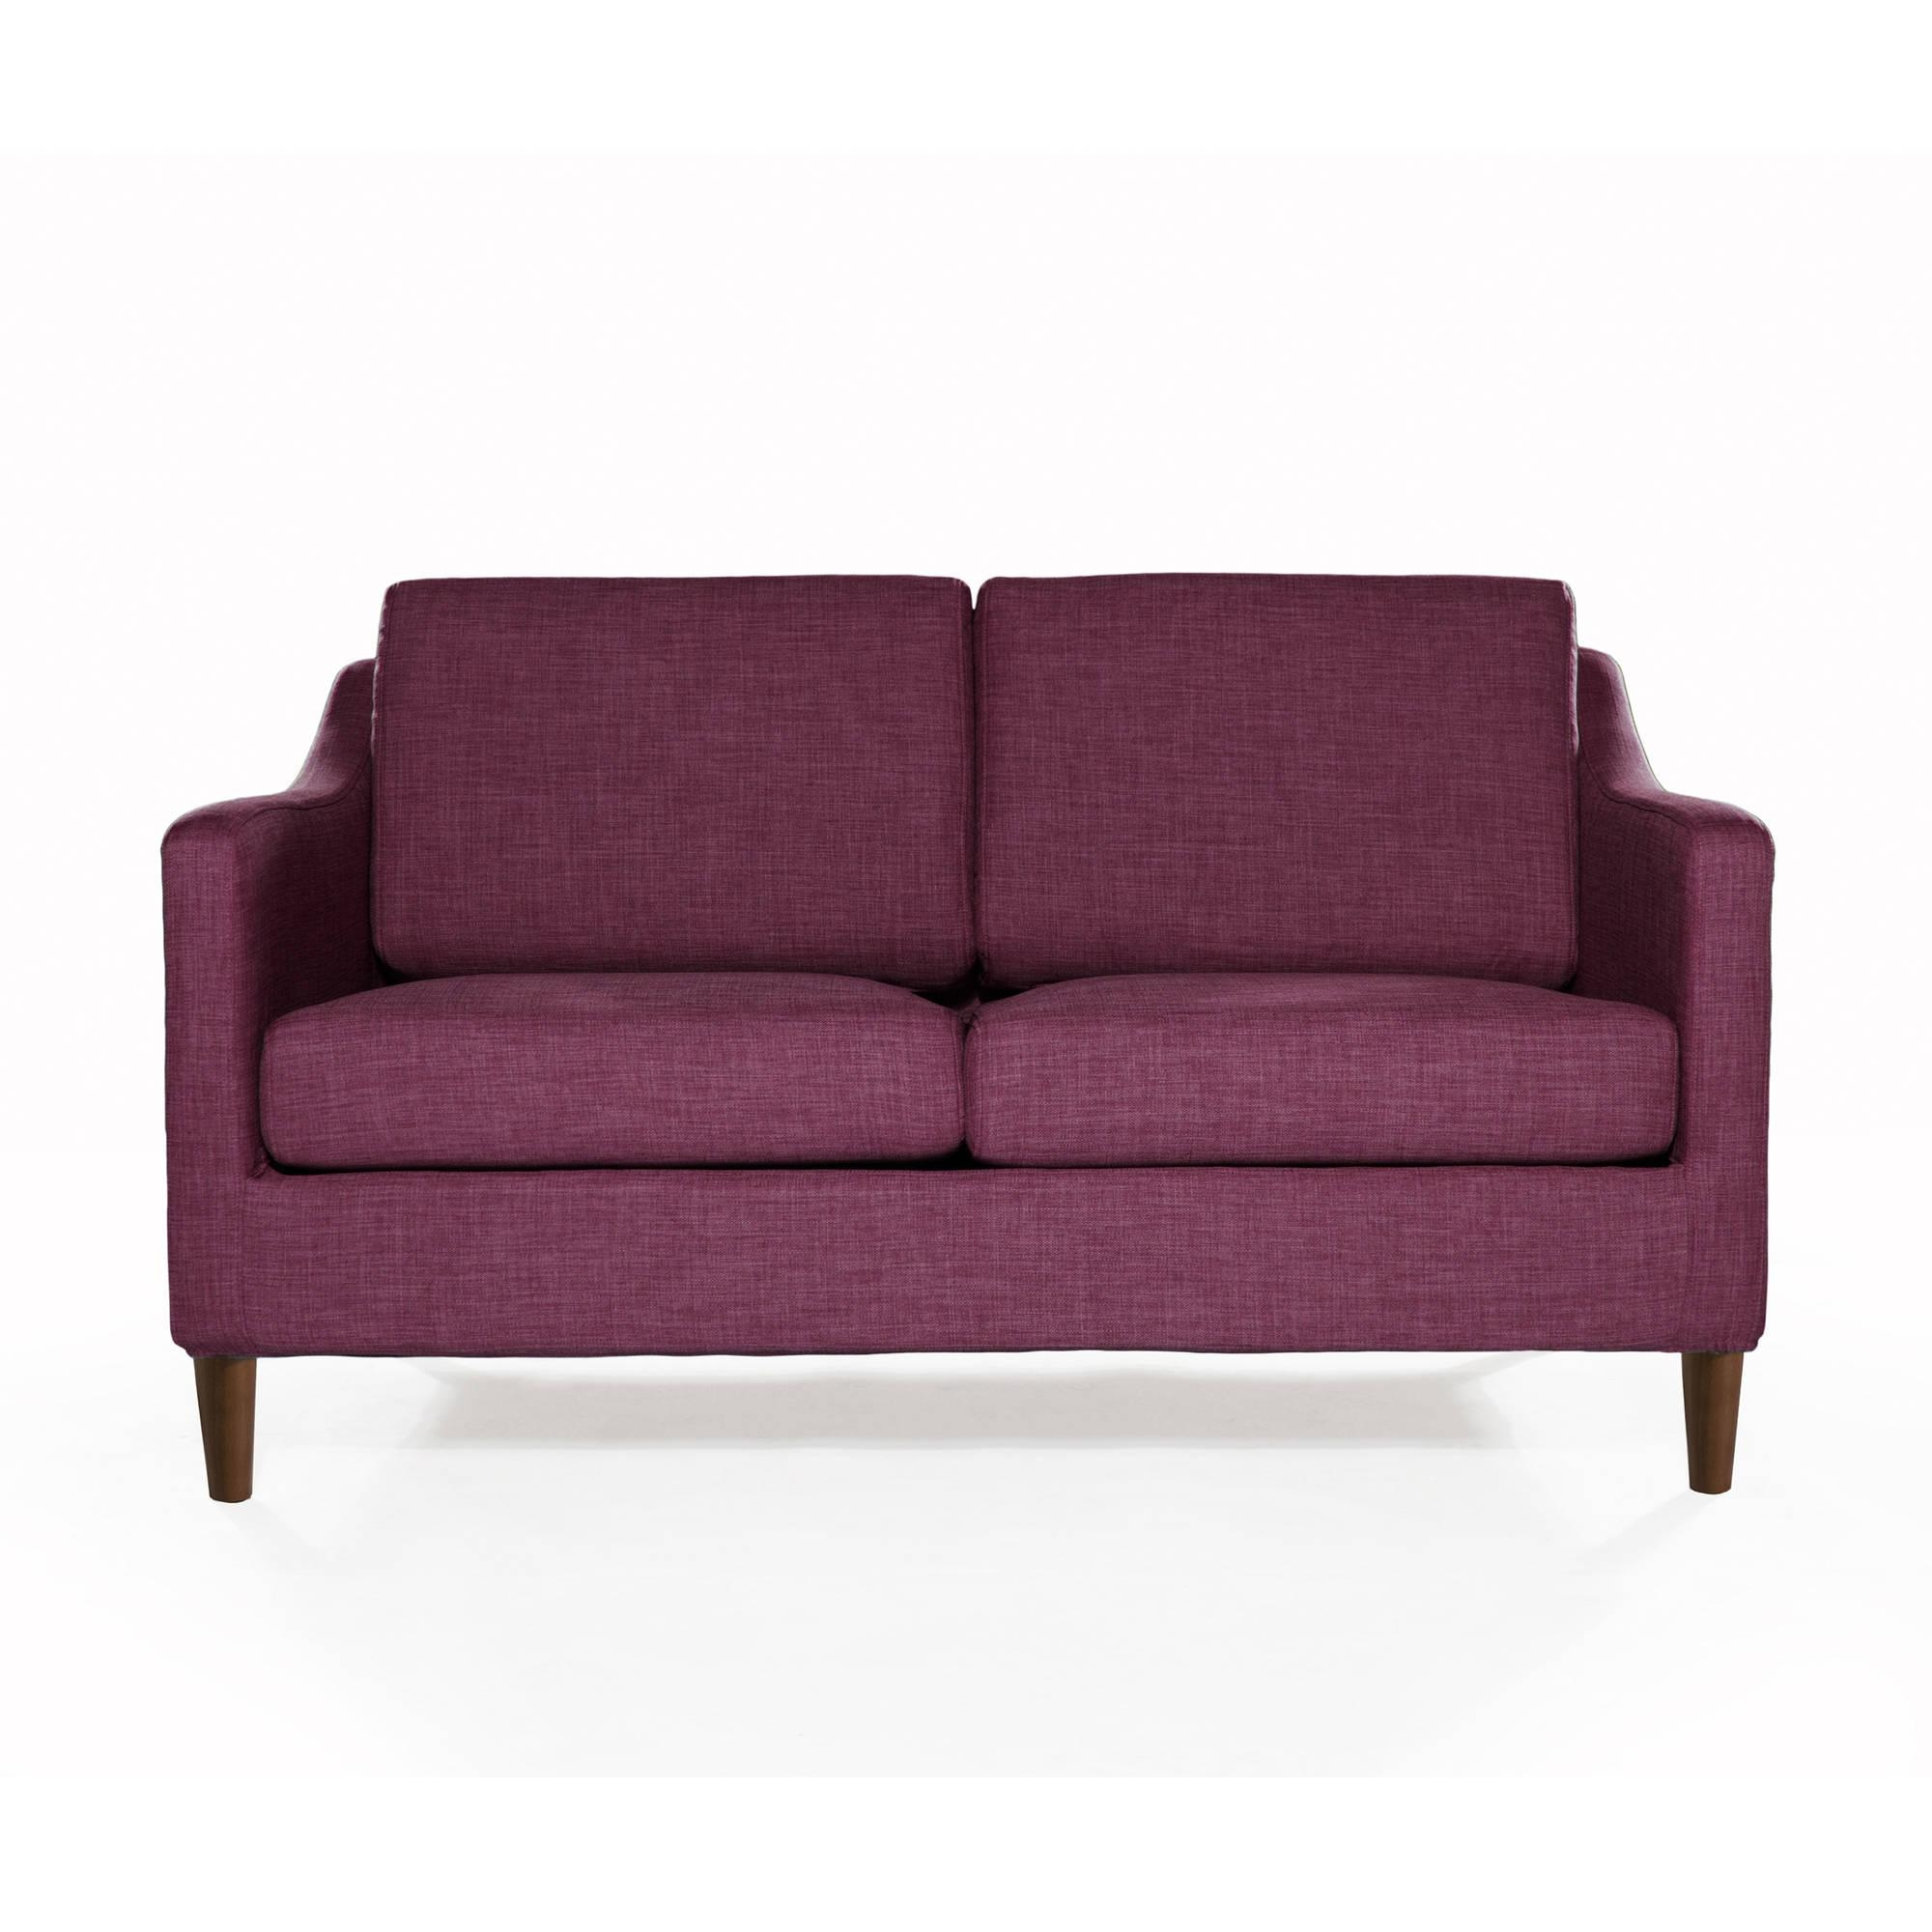 Sofas & Couches – Walmart Within Sofas And Loveseats (View 11 of 20)